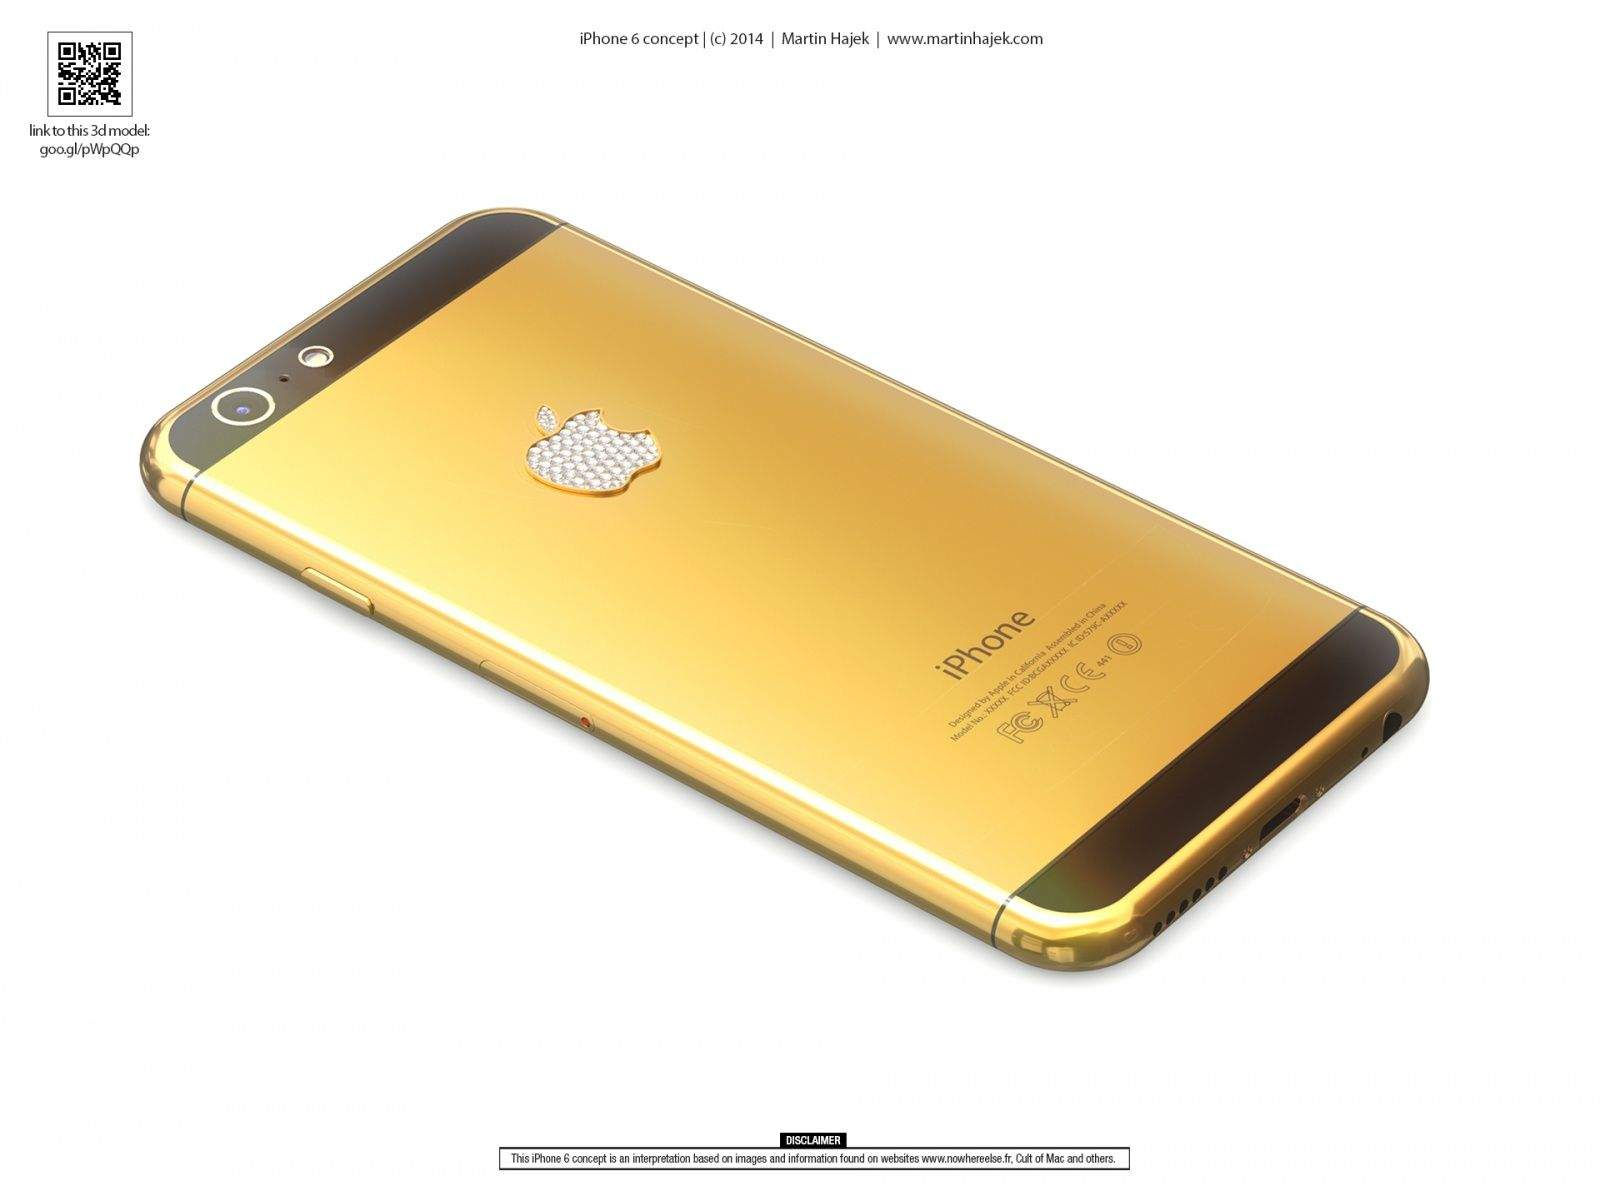 14651250809 Fb0f458104 O This Isnt The First Gold IPhone 6